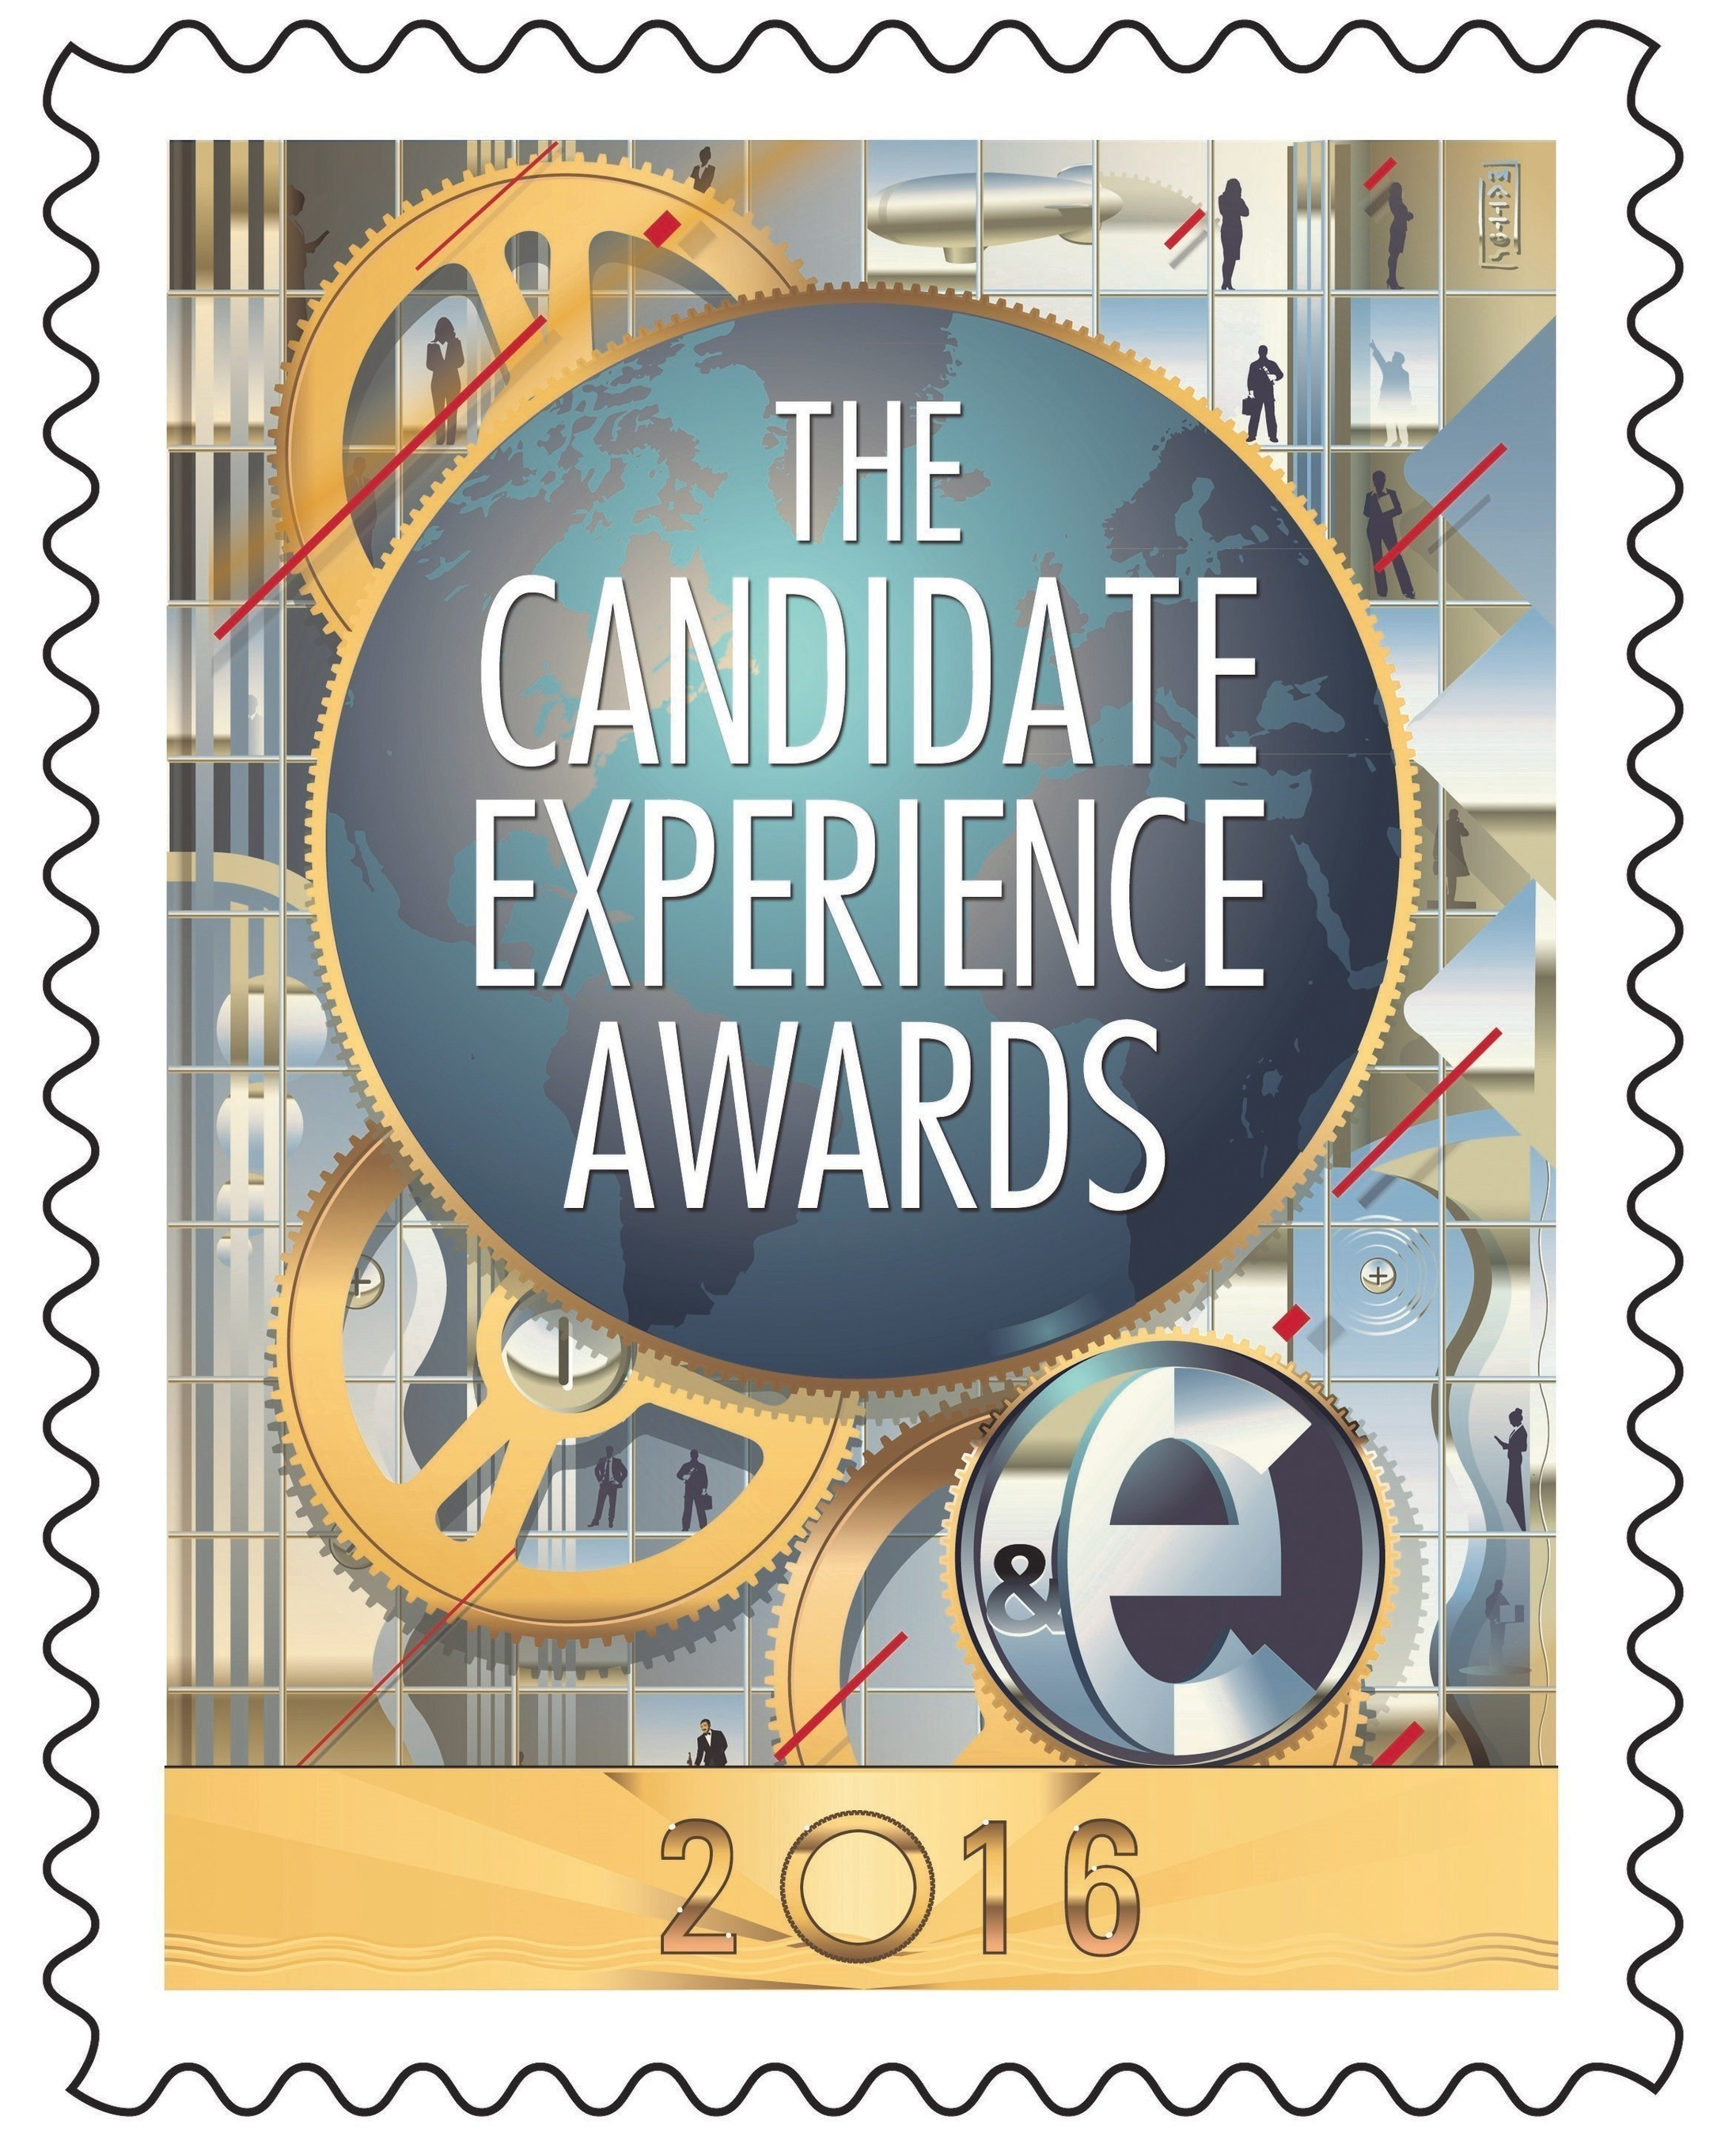 Enterprise Holdings awarded with the North American Candidate Experience Award for the fourth straight year.